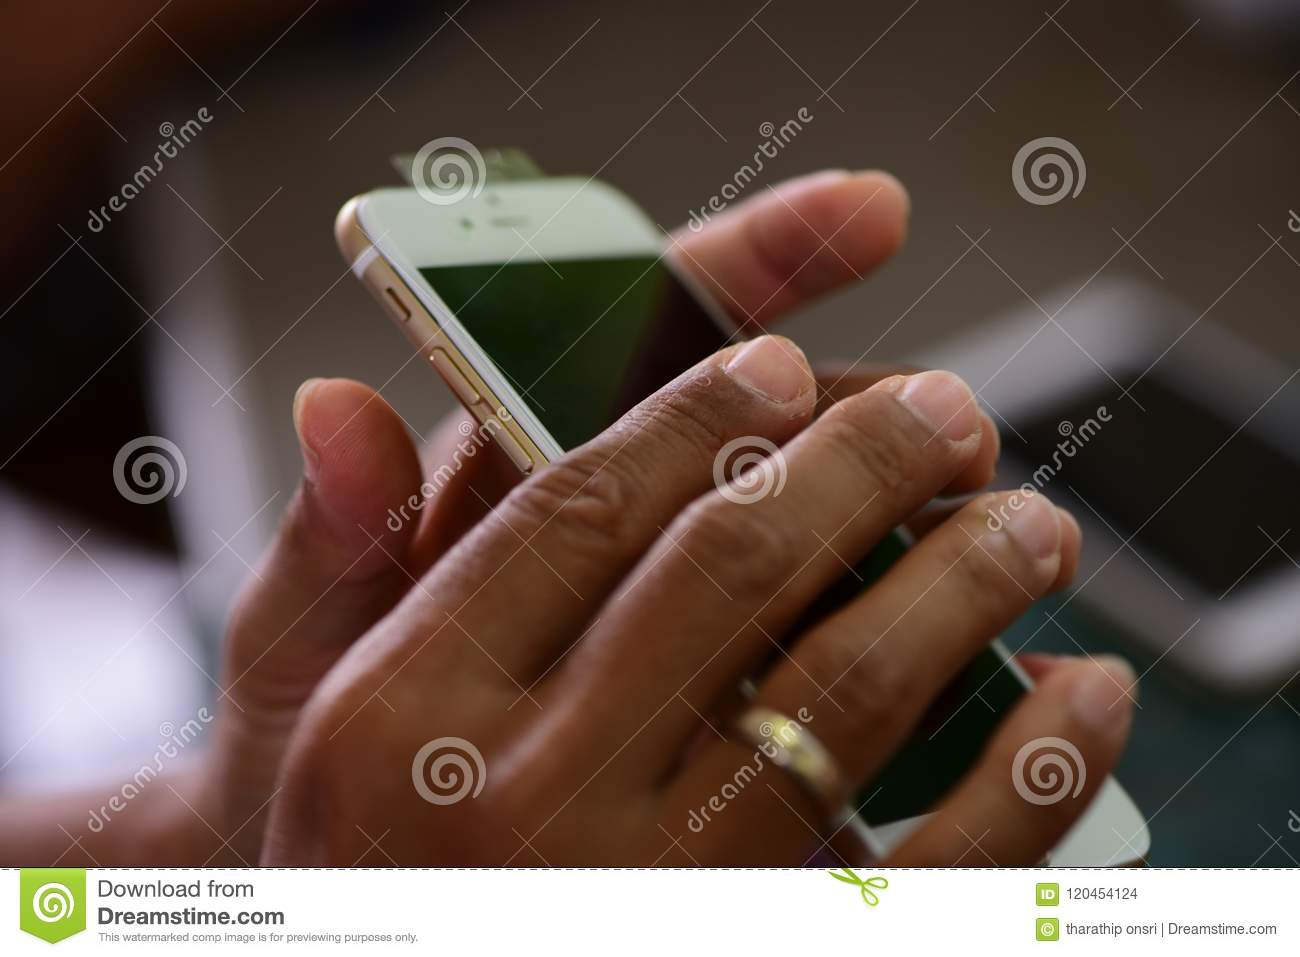 Repairing mobile phones and tablets by skilled technicians.